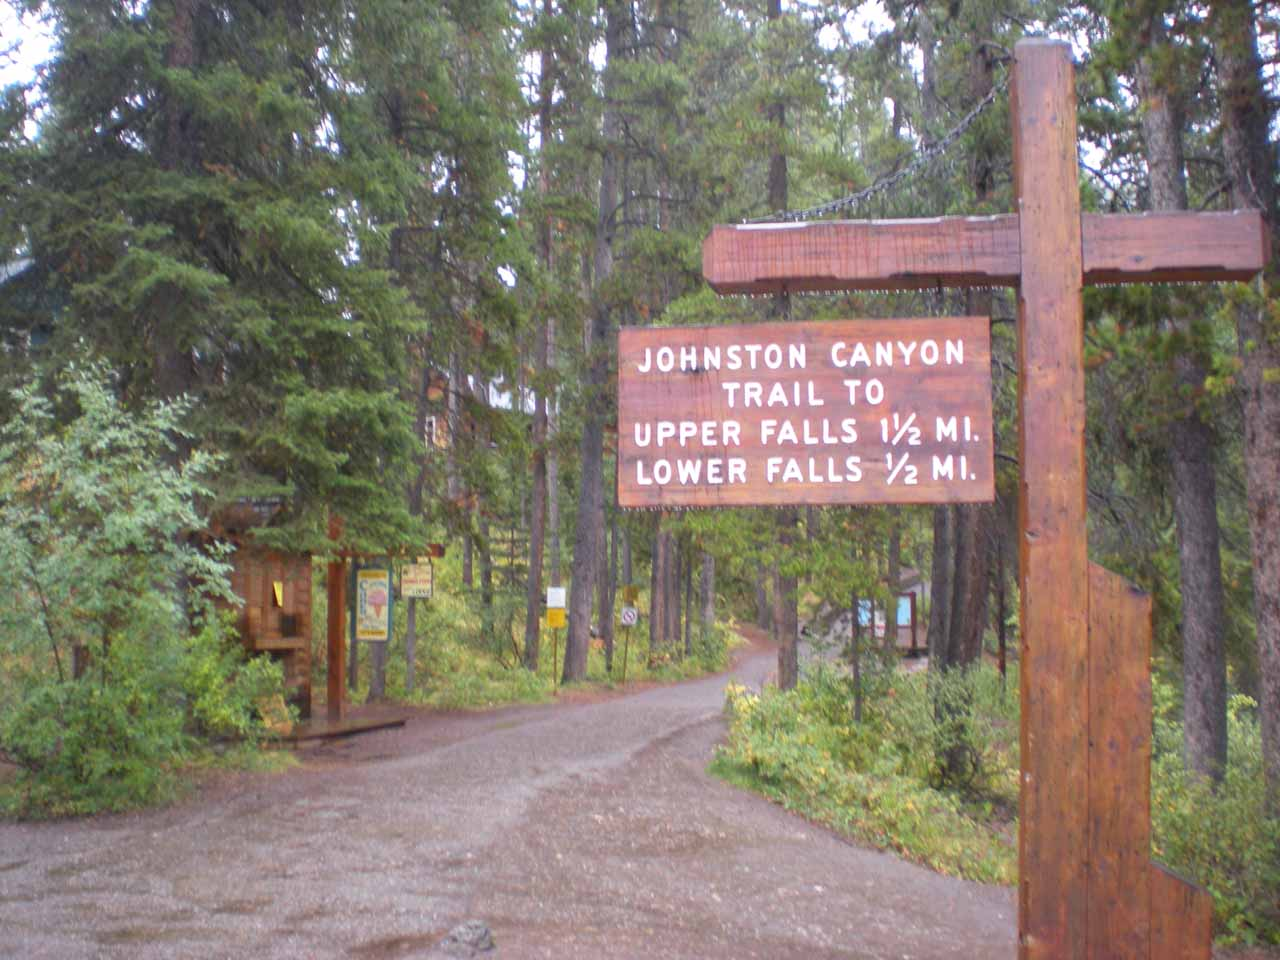 The official start of the Johnston Canyon walk